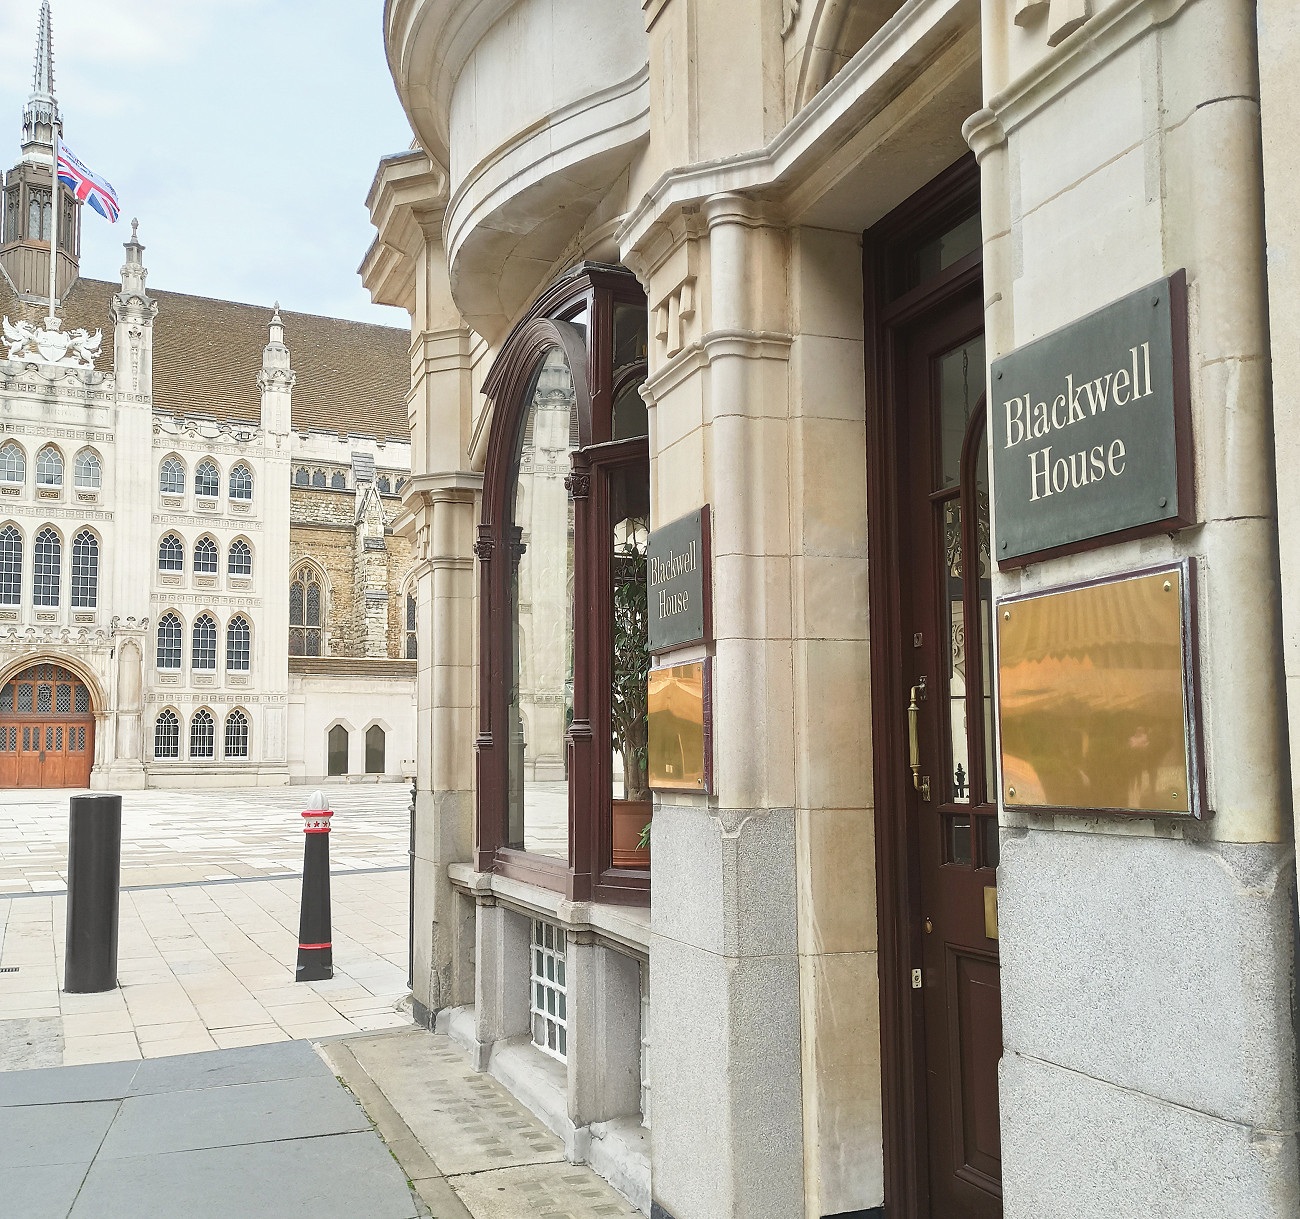 photo of blackwell house in guildhall yard